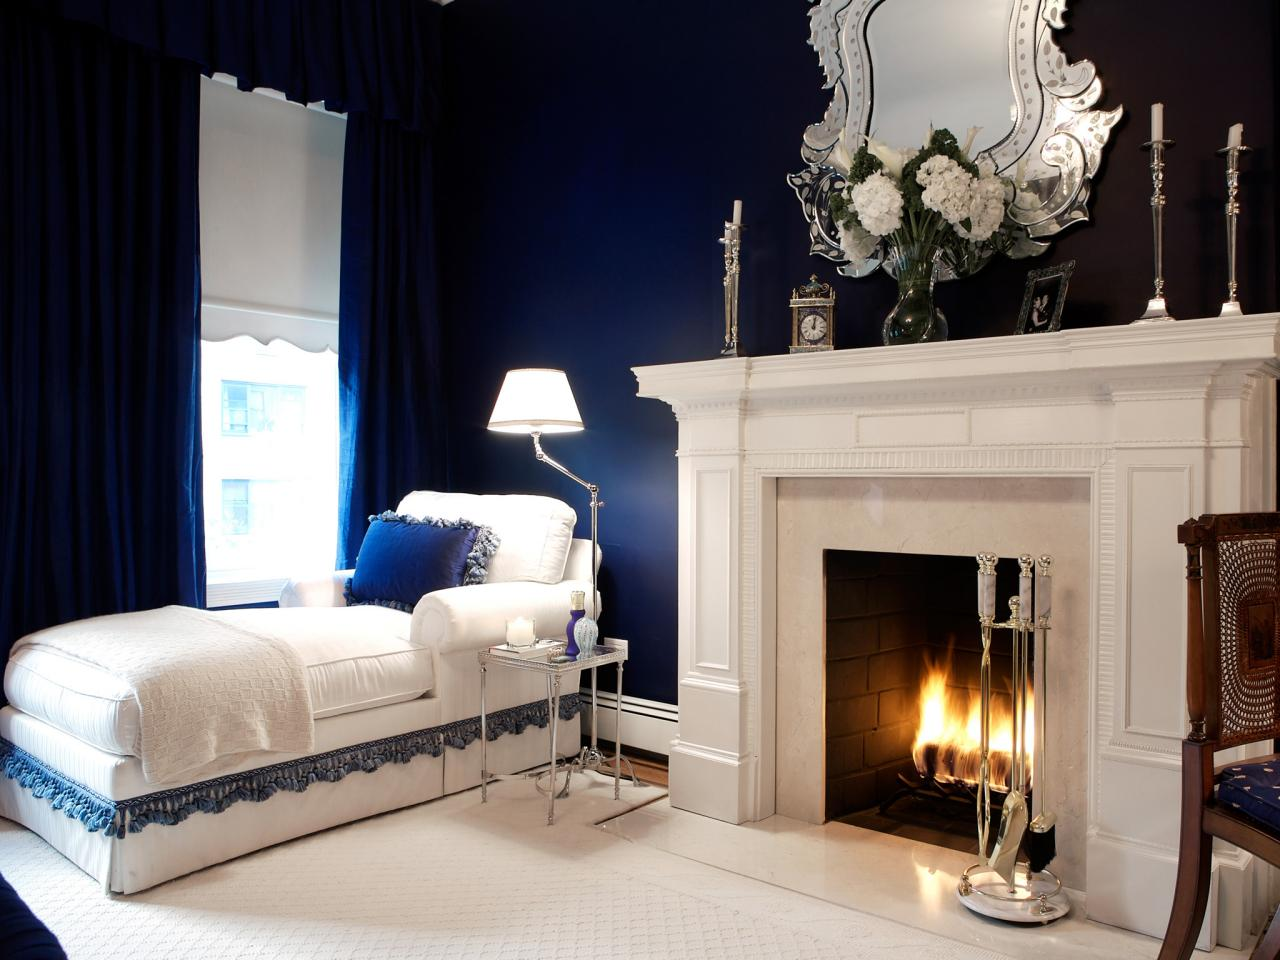 navy blue bedrooms: pictures, options & ideas | hgtv